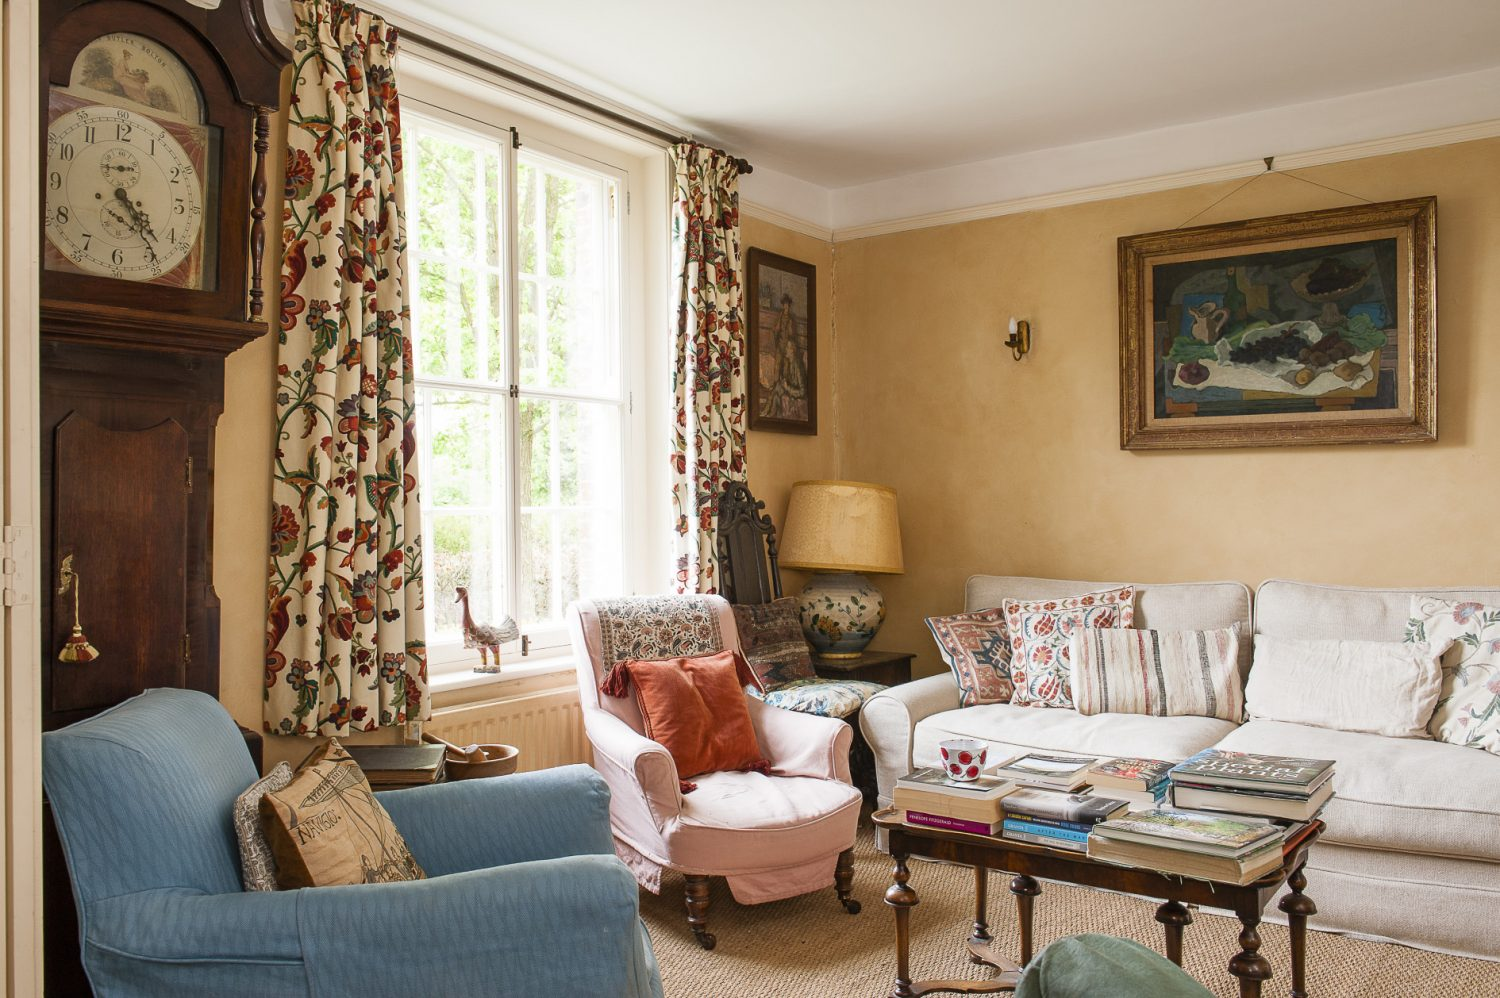 Vanessa's father liked to sit and read during his visits to Sissinghurst